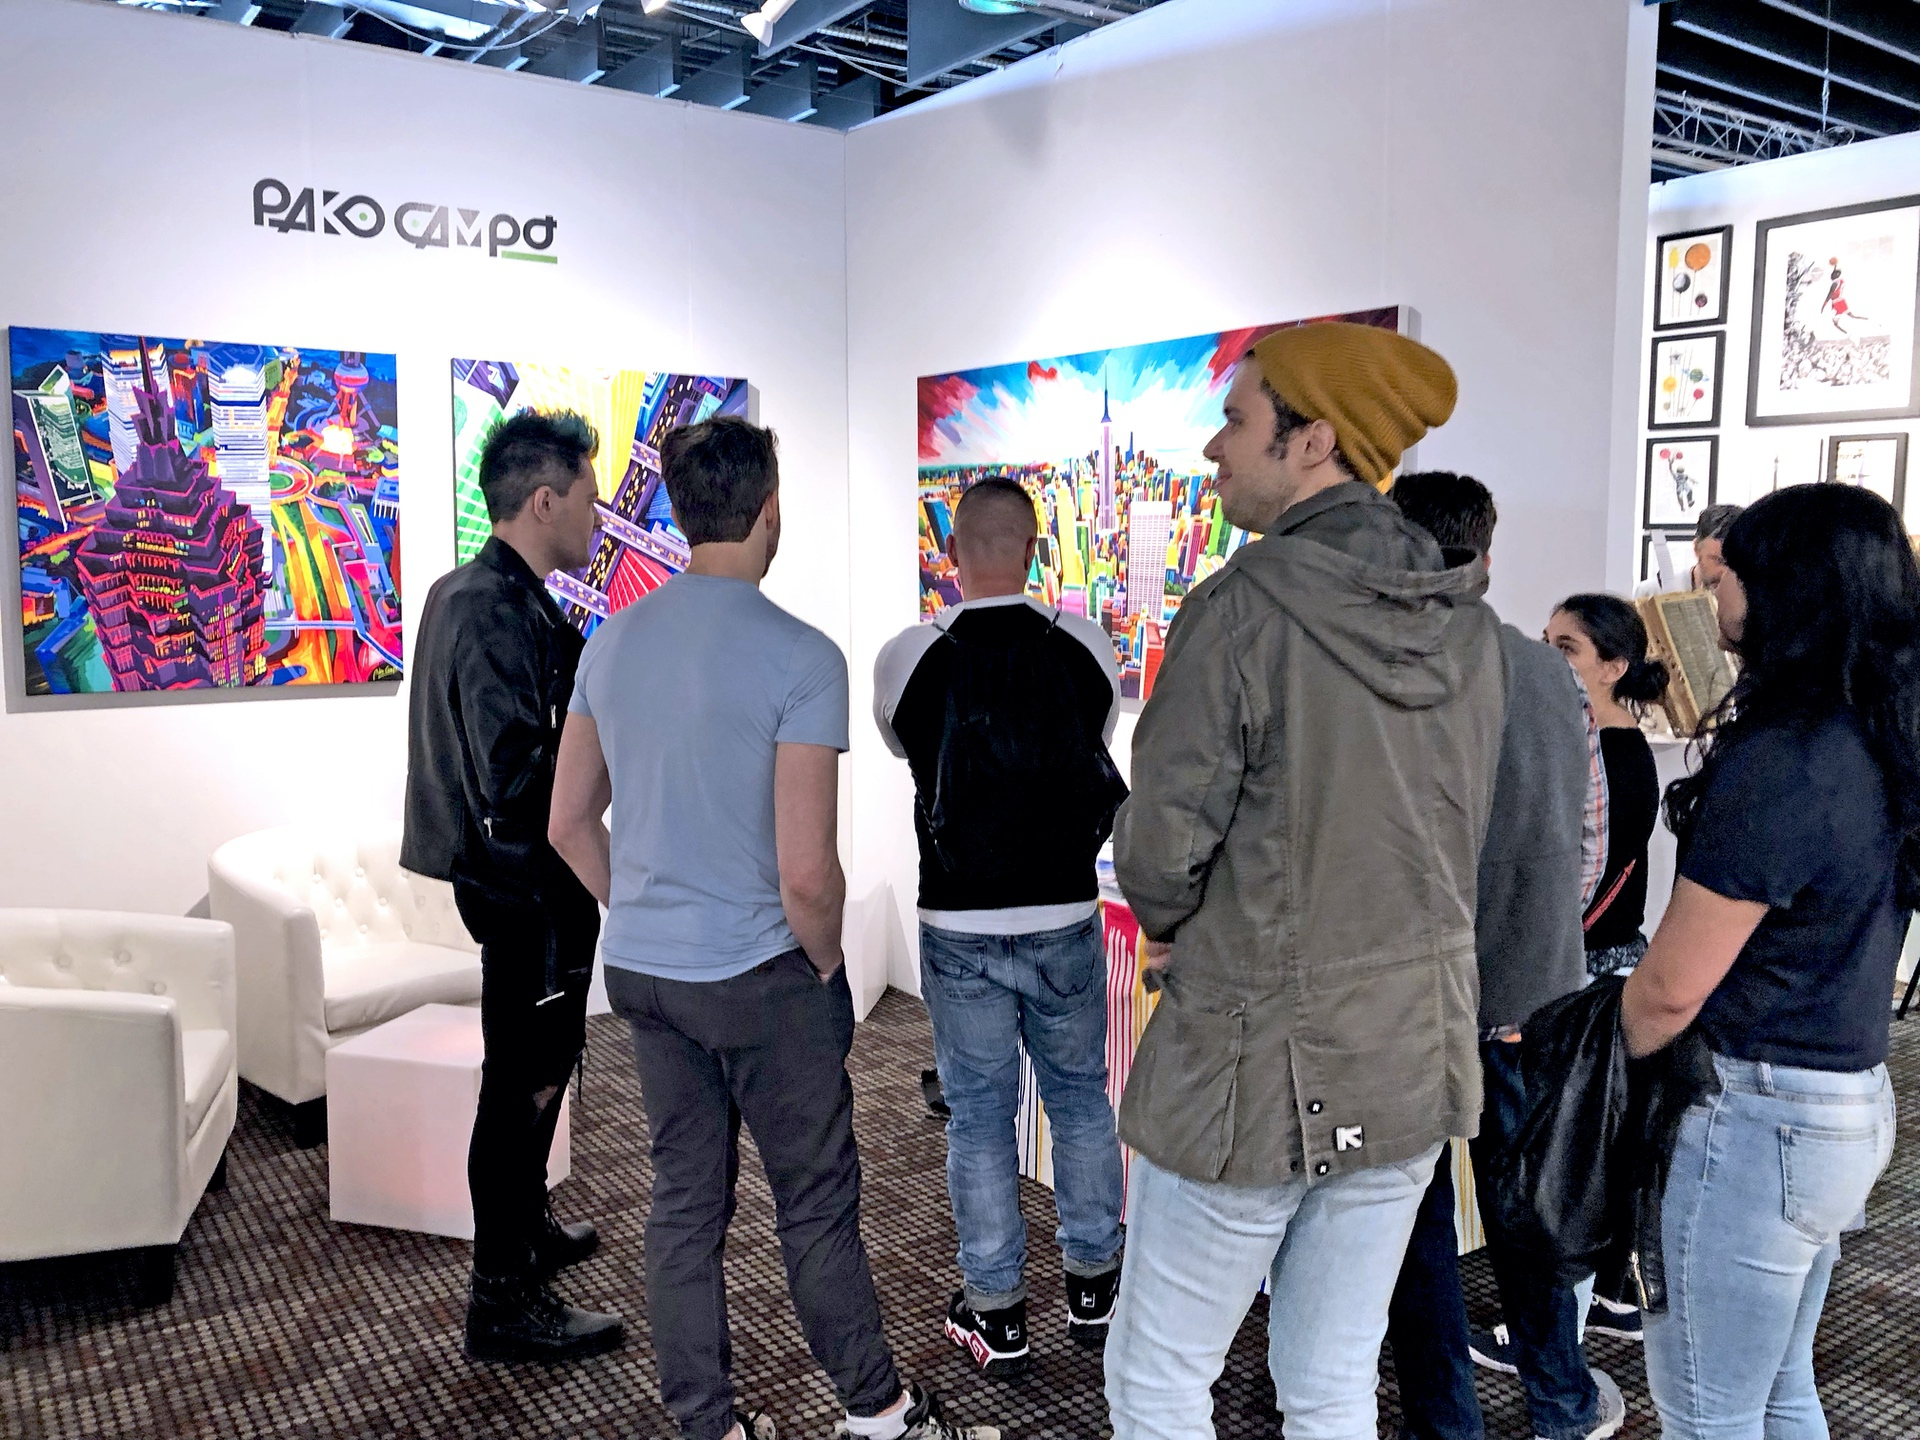 Last day of Artexpo New York 2019 03 by Pako Campo